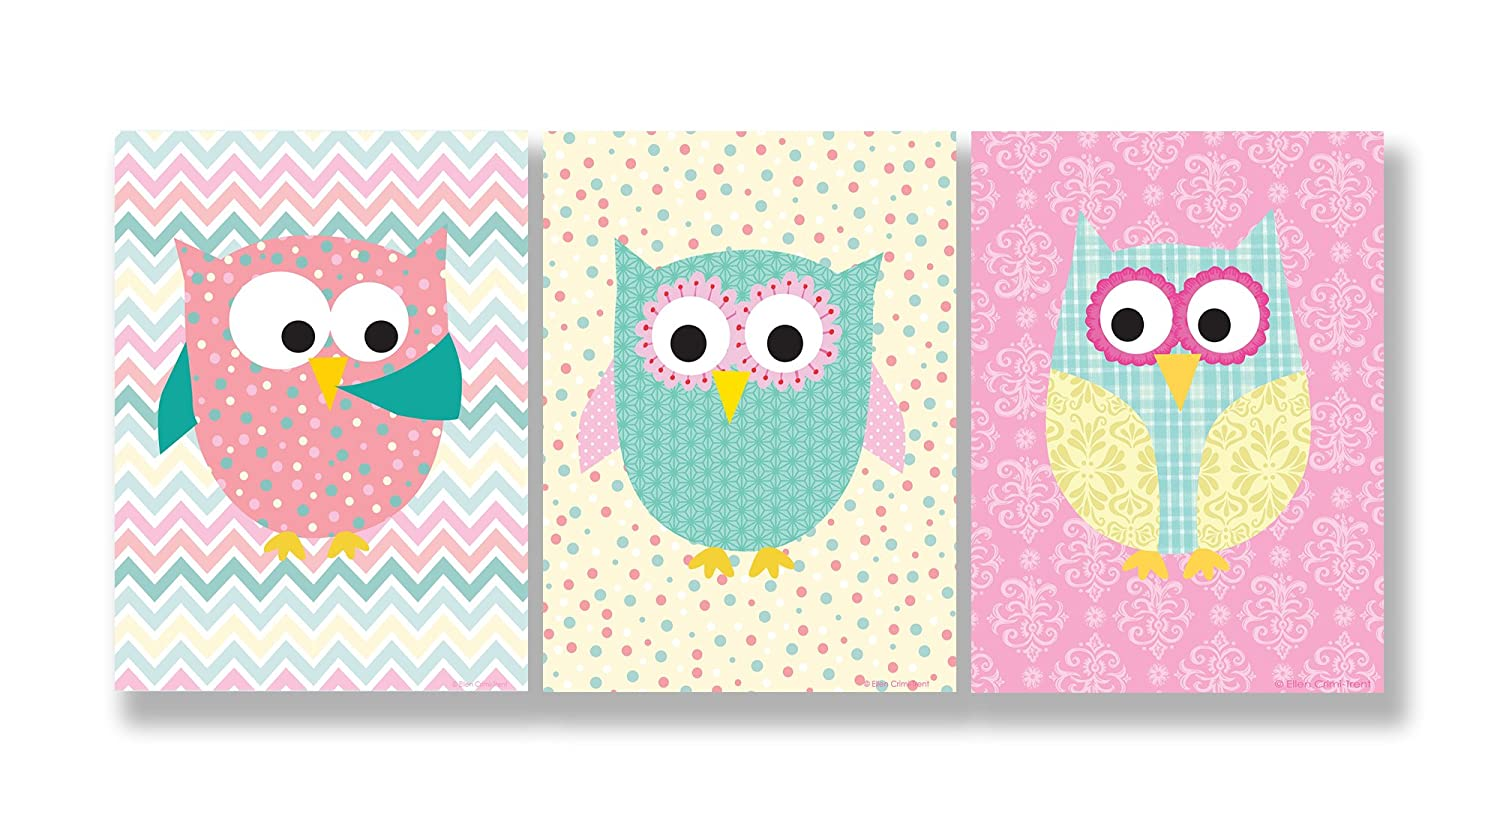 11 x 0.5 x 15 The Kids Room by Stupell Pastel Whimsical Owls 3-Pc Wall Plaque Set Proudly Made in USA brp-1587 trio